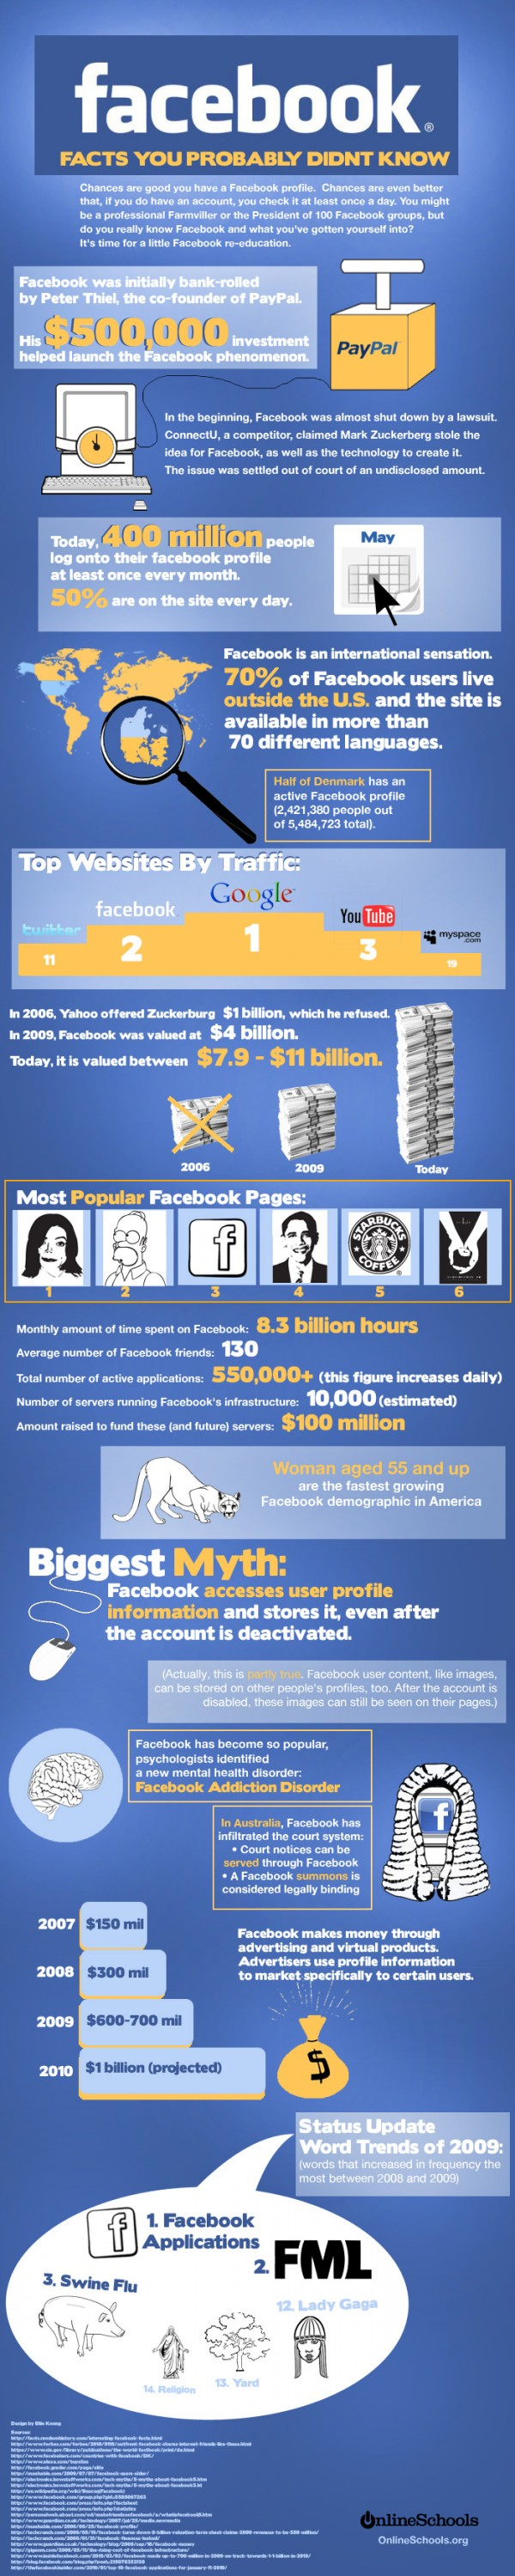 facebook facts infographic 600x3000 resized 600